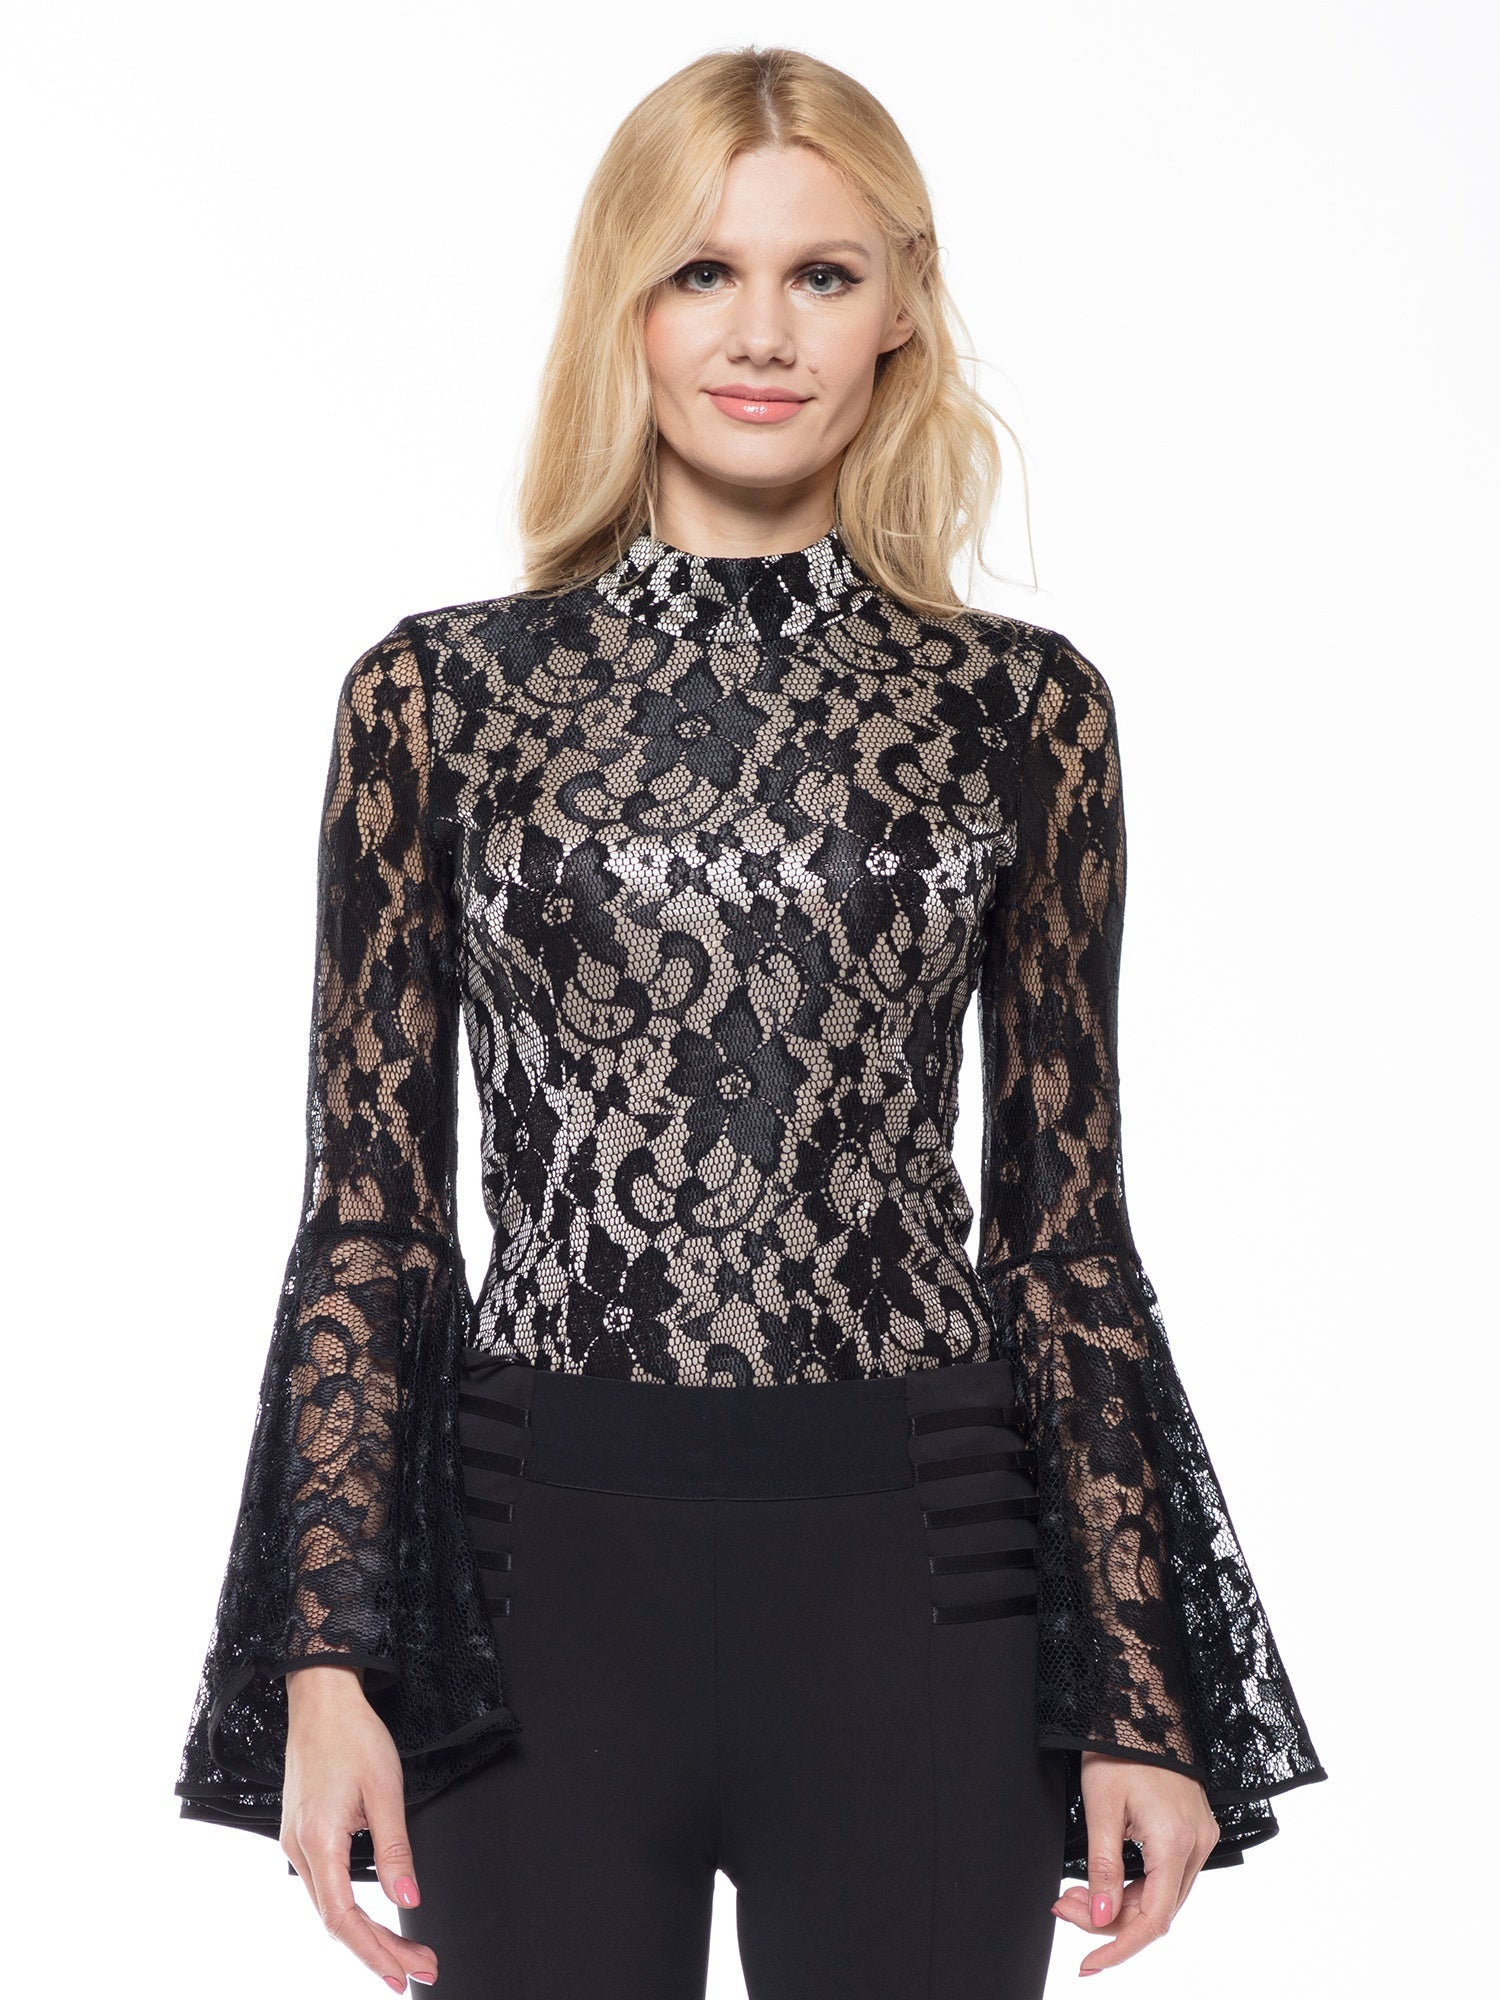 Lace fabric sleeves A line detail body suit | Why Dress